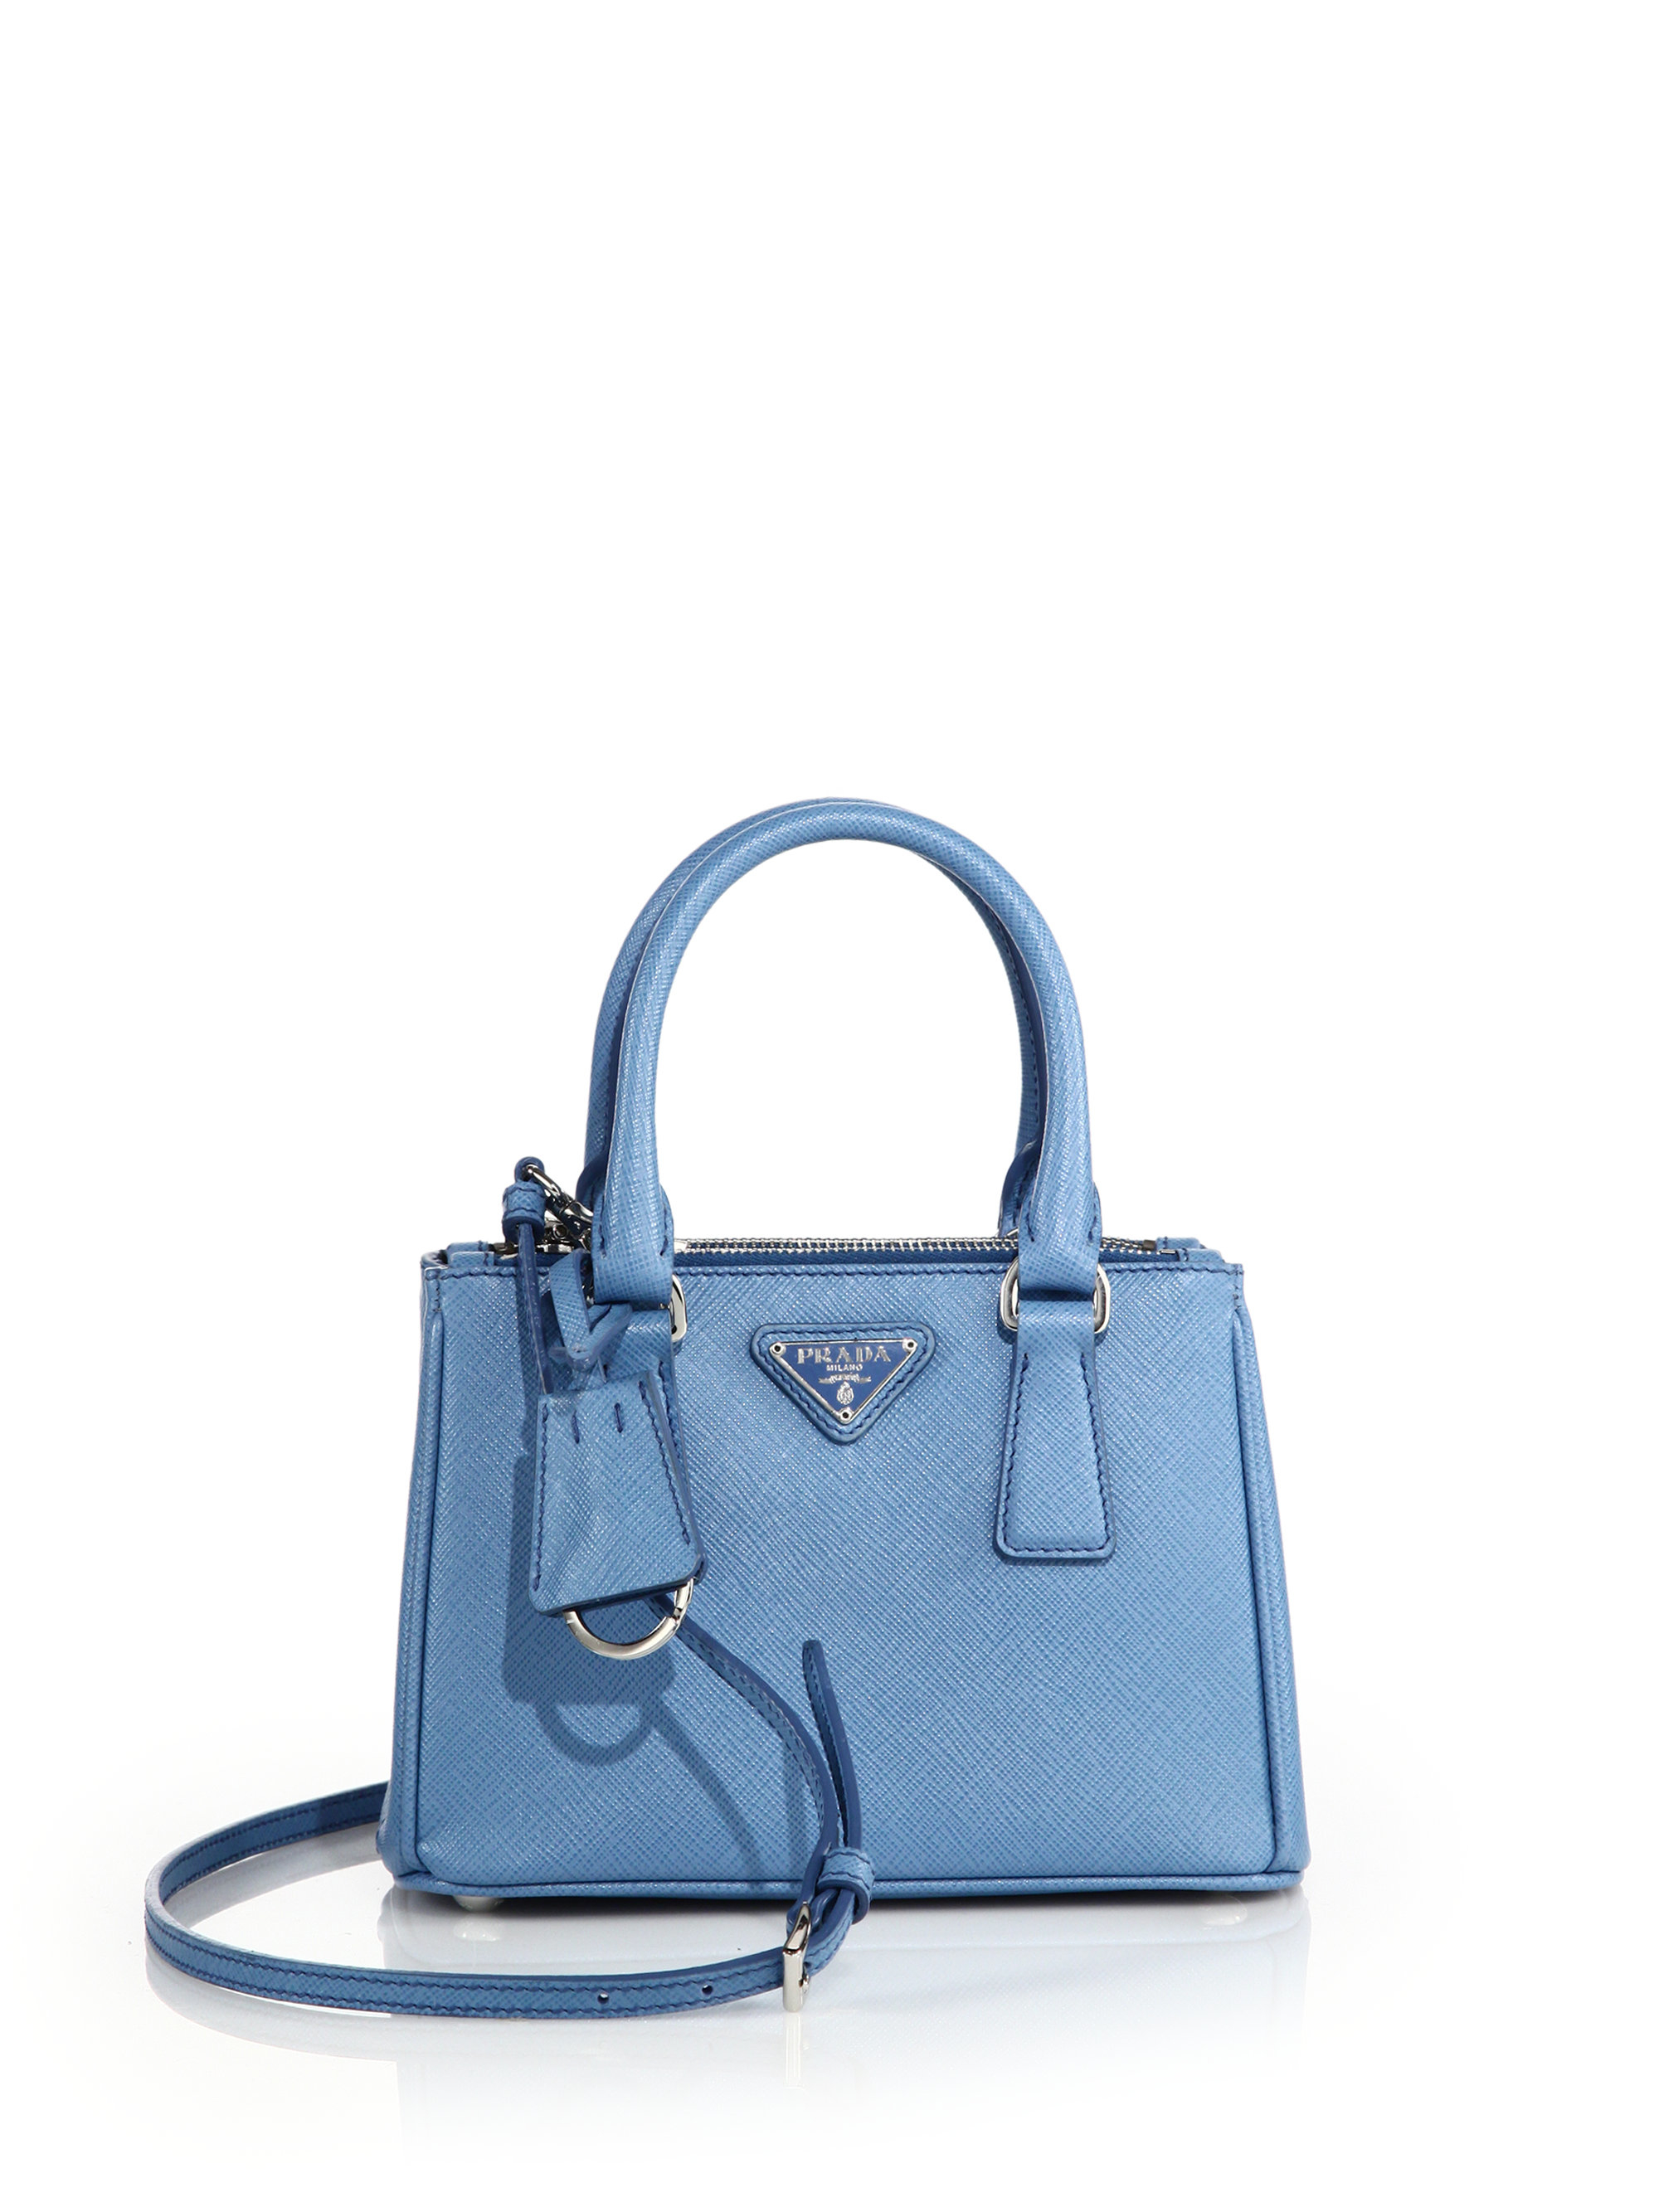 91c1586473c9 ... cheapest prada saffiano mini galleria crossbody bag e46e7 8fad2 usa  prada ecru leather wallet 6f886 c3f5a ...